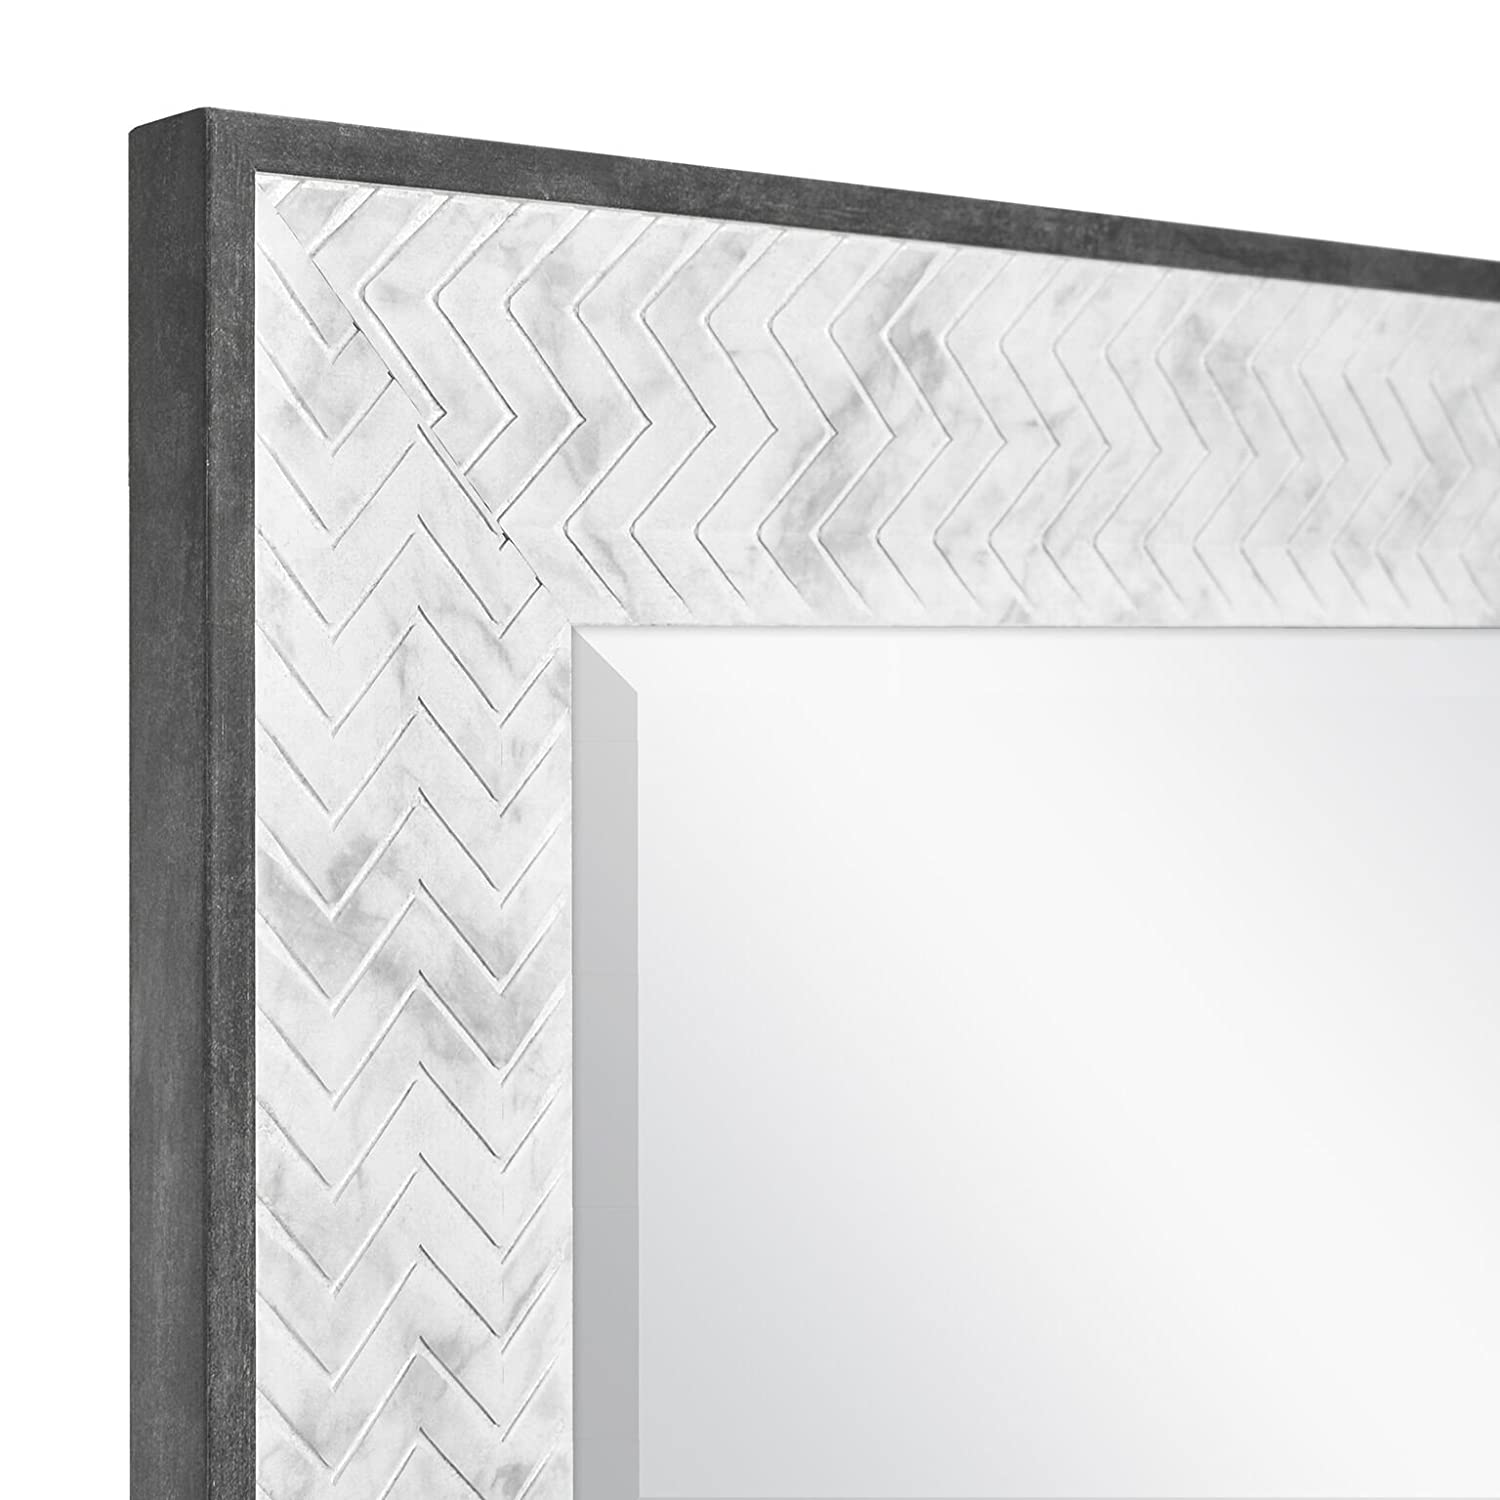 66944 Mirror 22 x 26 Inch, Marble MCS 16x20 Inch Chevron 22x26 Overall Size